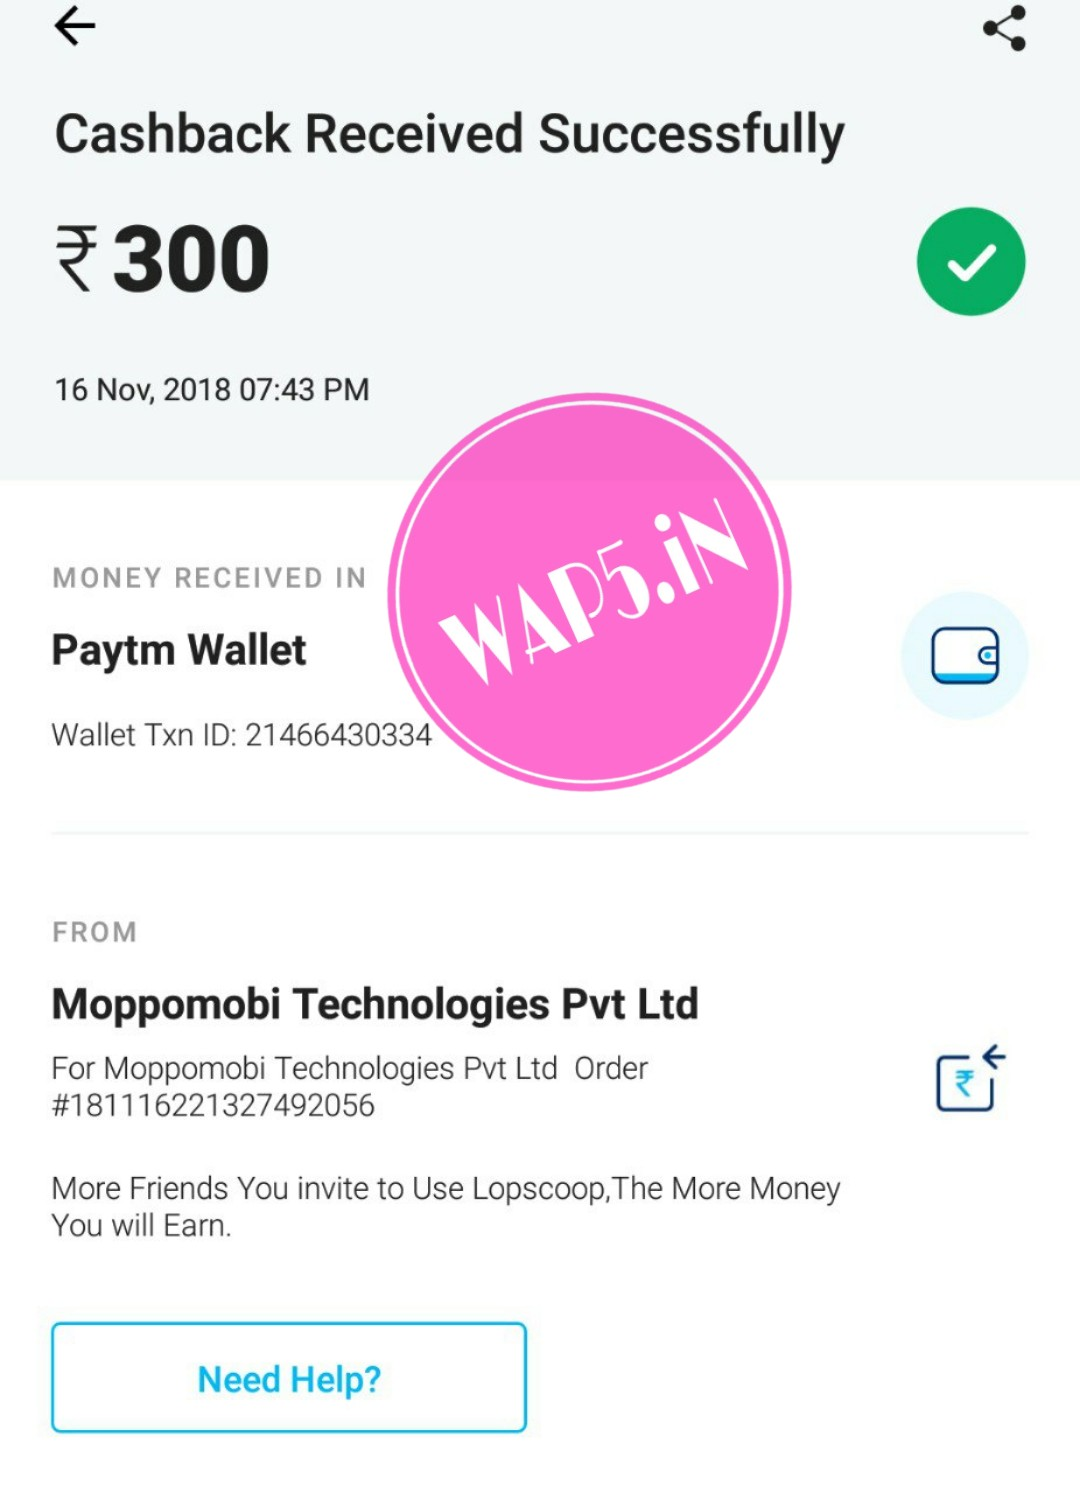 Unlimited Trick + ₹4000 Proof Added] LopScoop App – Refer Friends